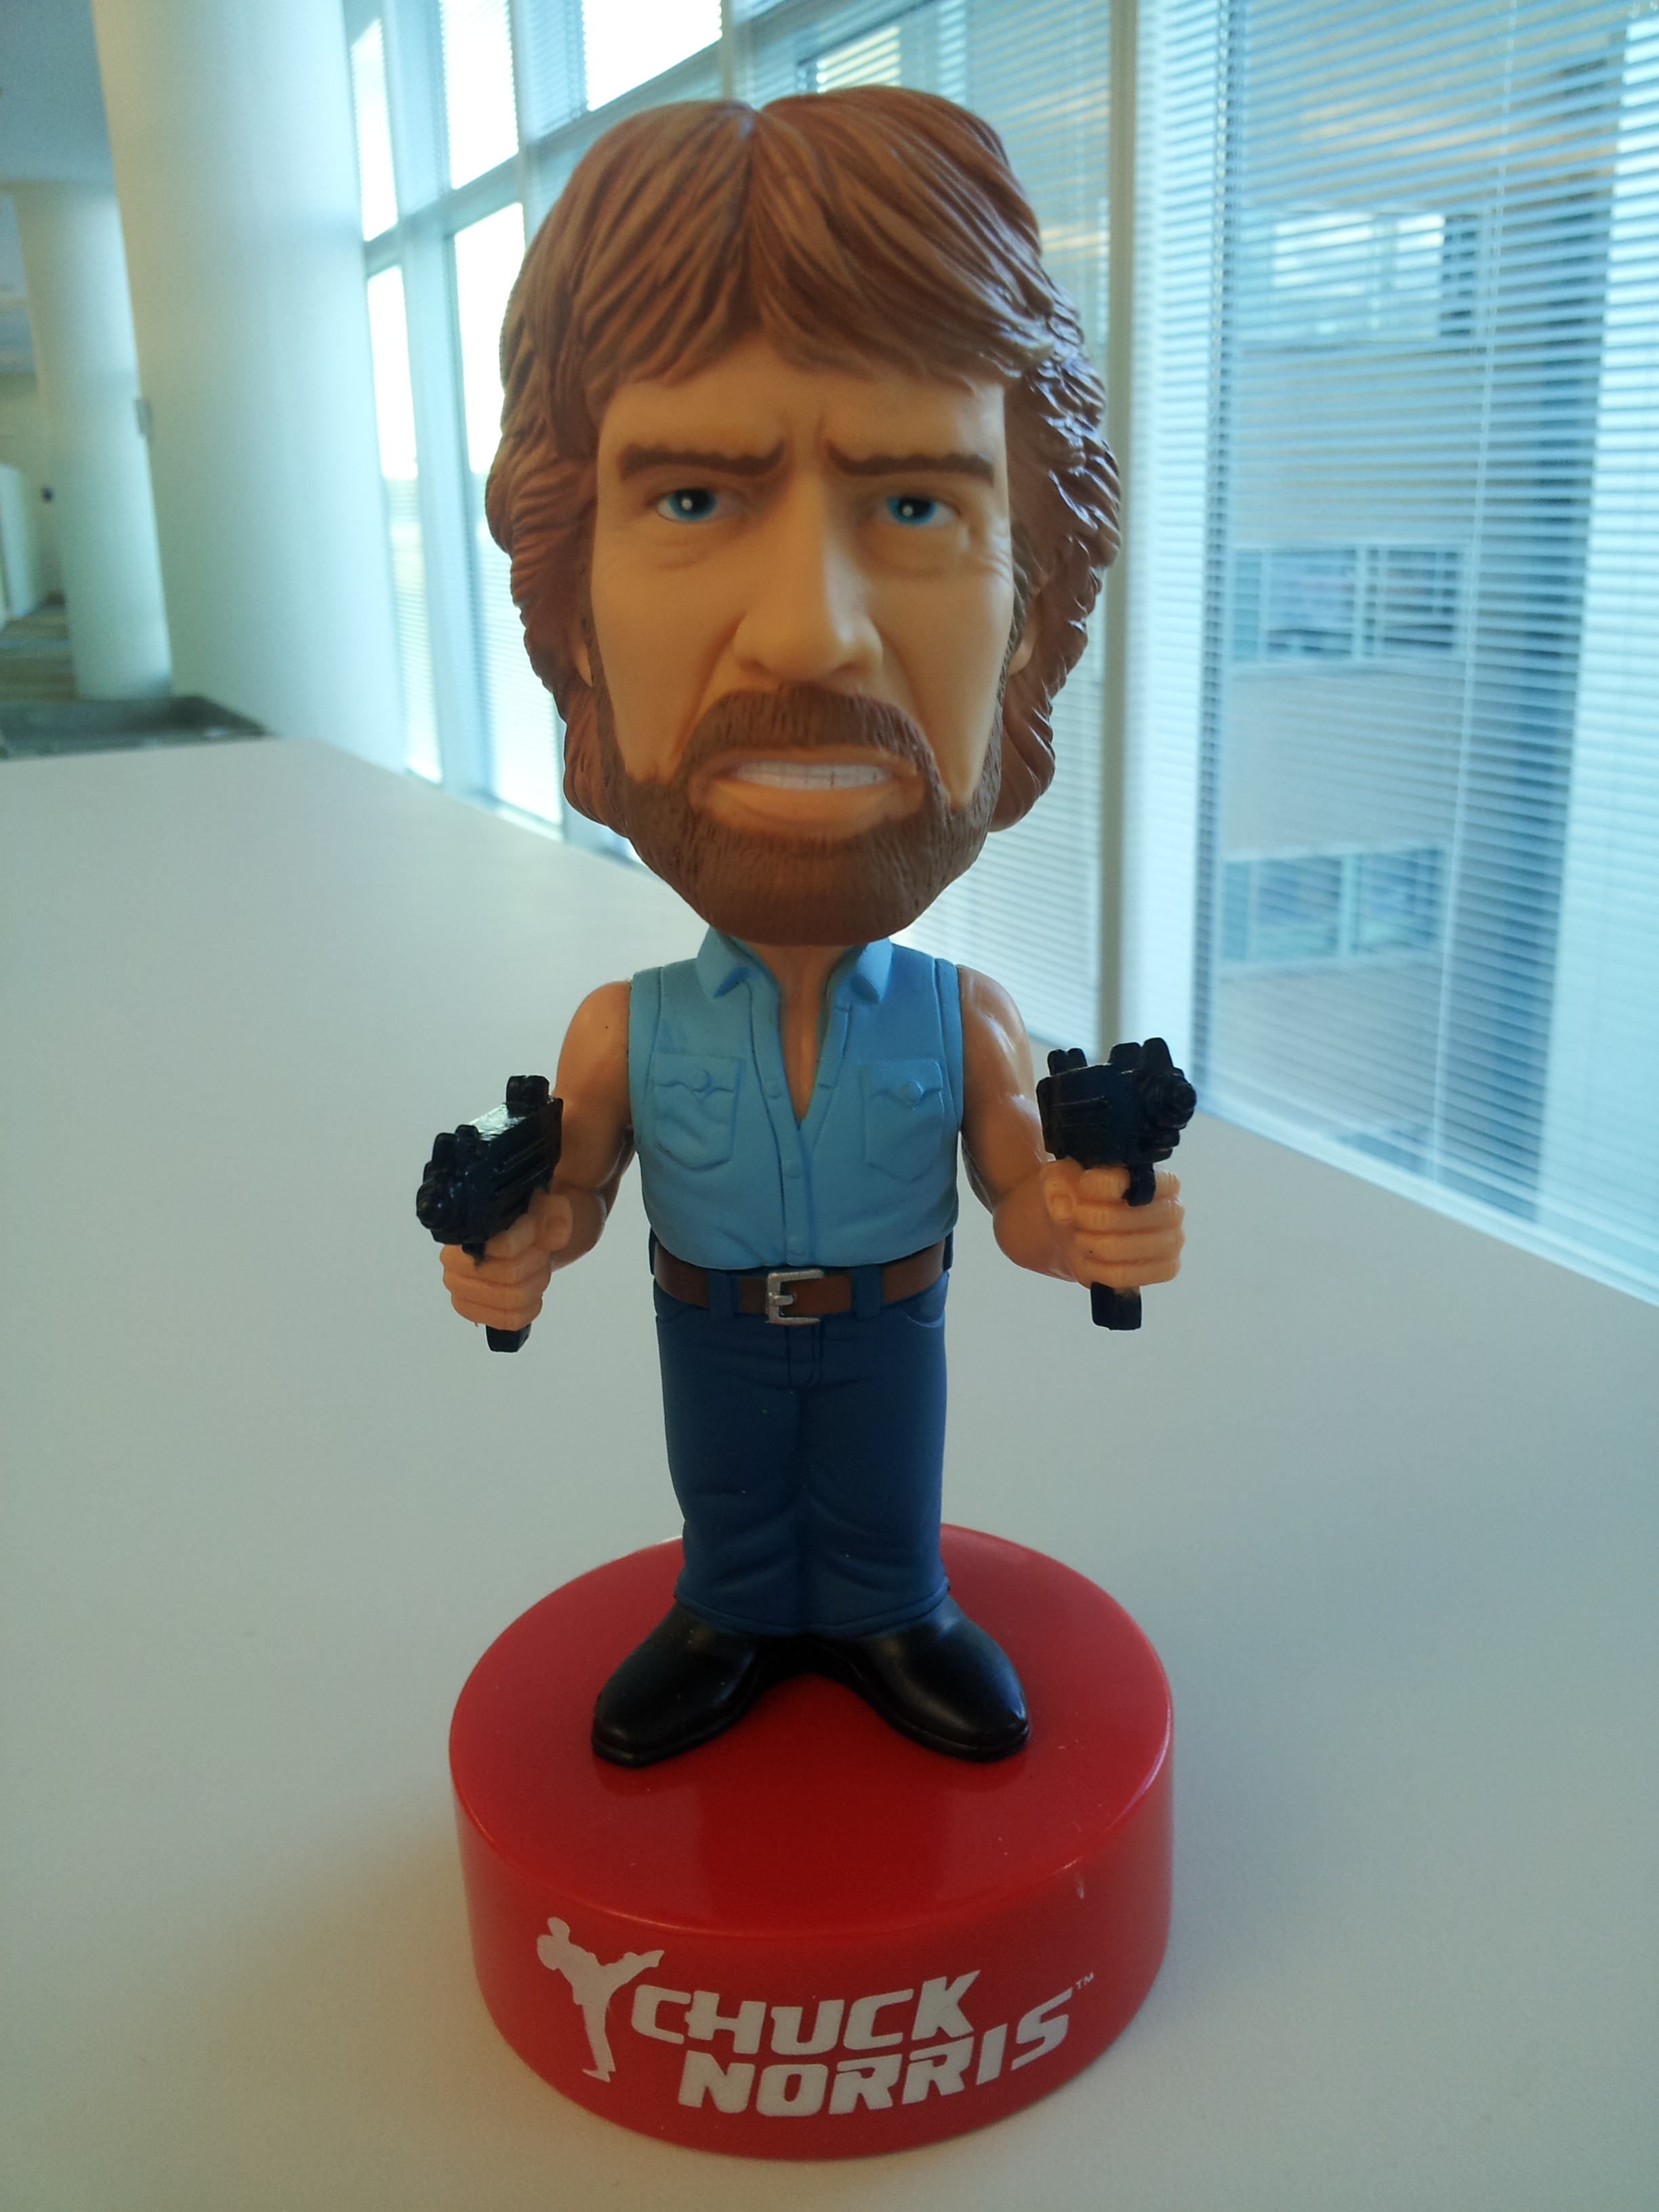 Chuck Norris doesn't breathe...he holds air hostage.